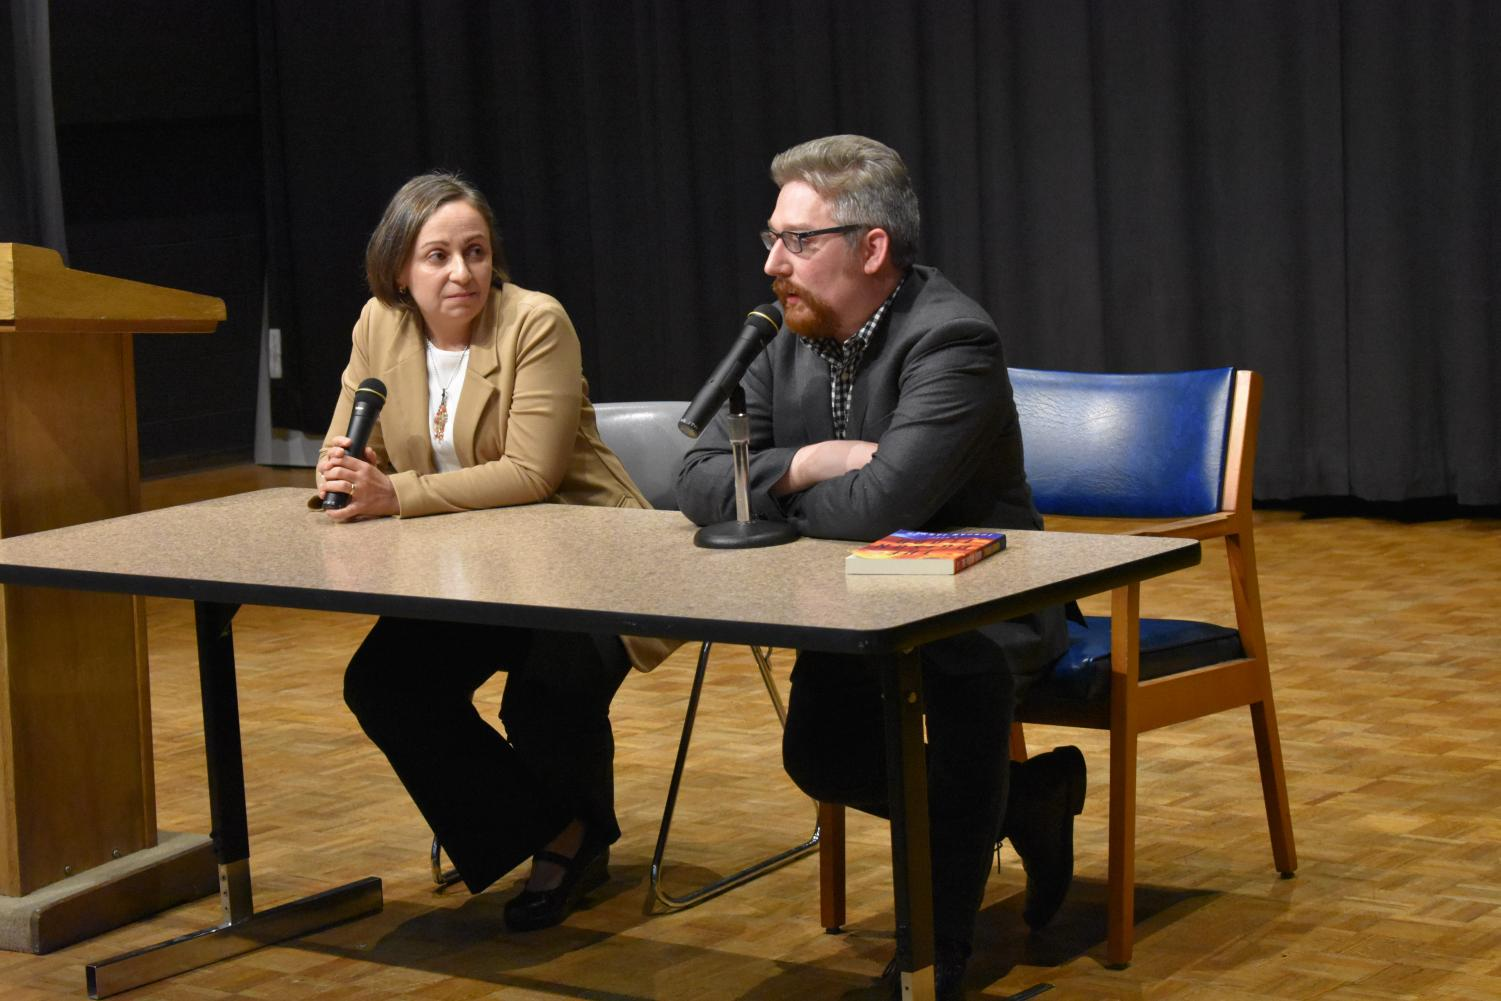 Authors and Marshall alumni Rajia Hassib and Jordan Farmer answer questions posed by the audience during the first event in the fall 2019 season of the A. E. Stringer Visiting Writers Series Thursday, Sept. 26.